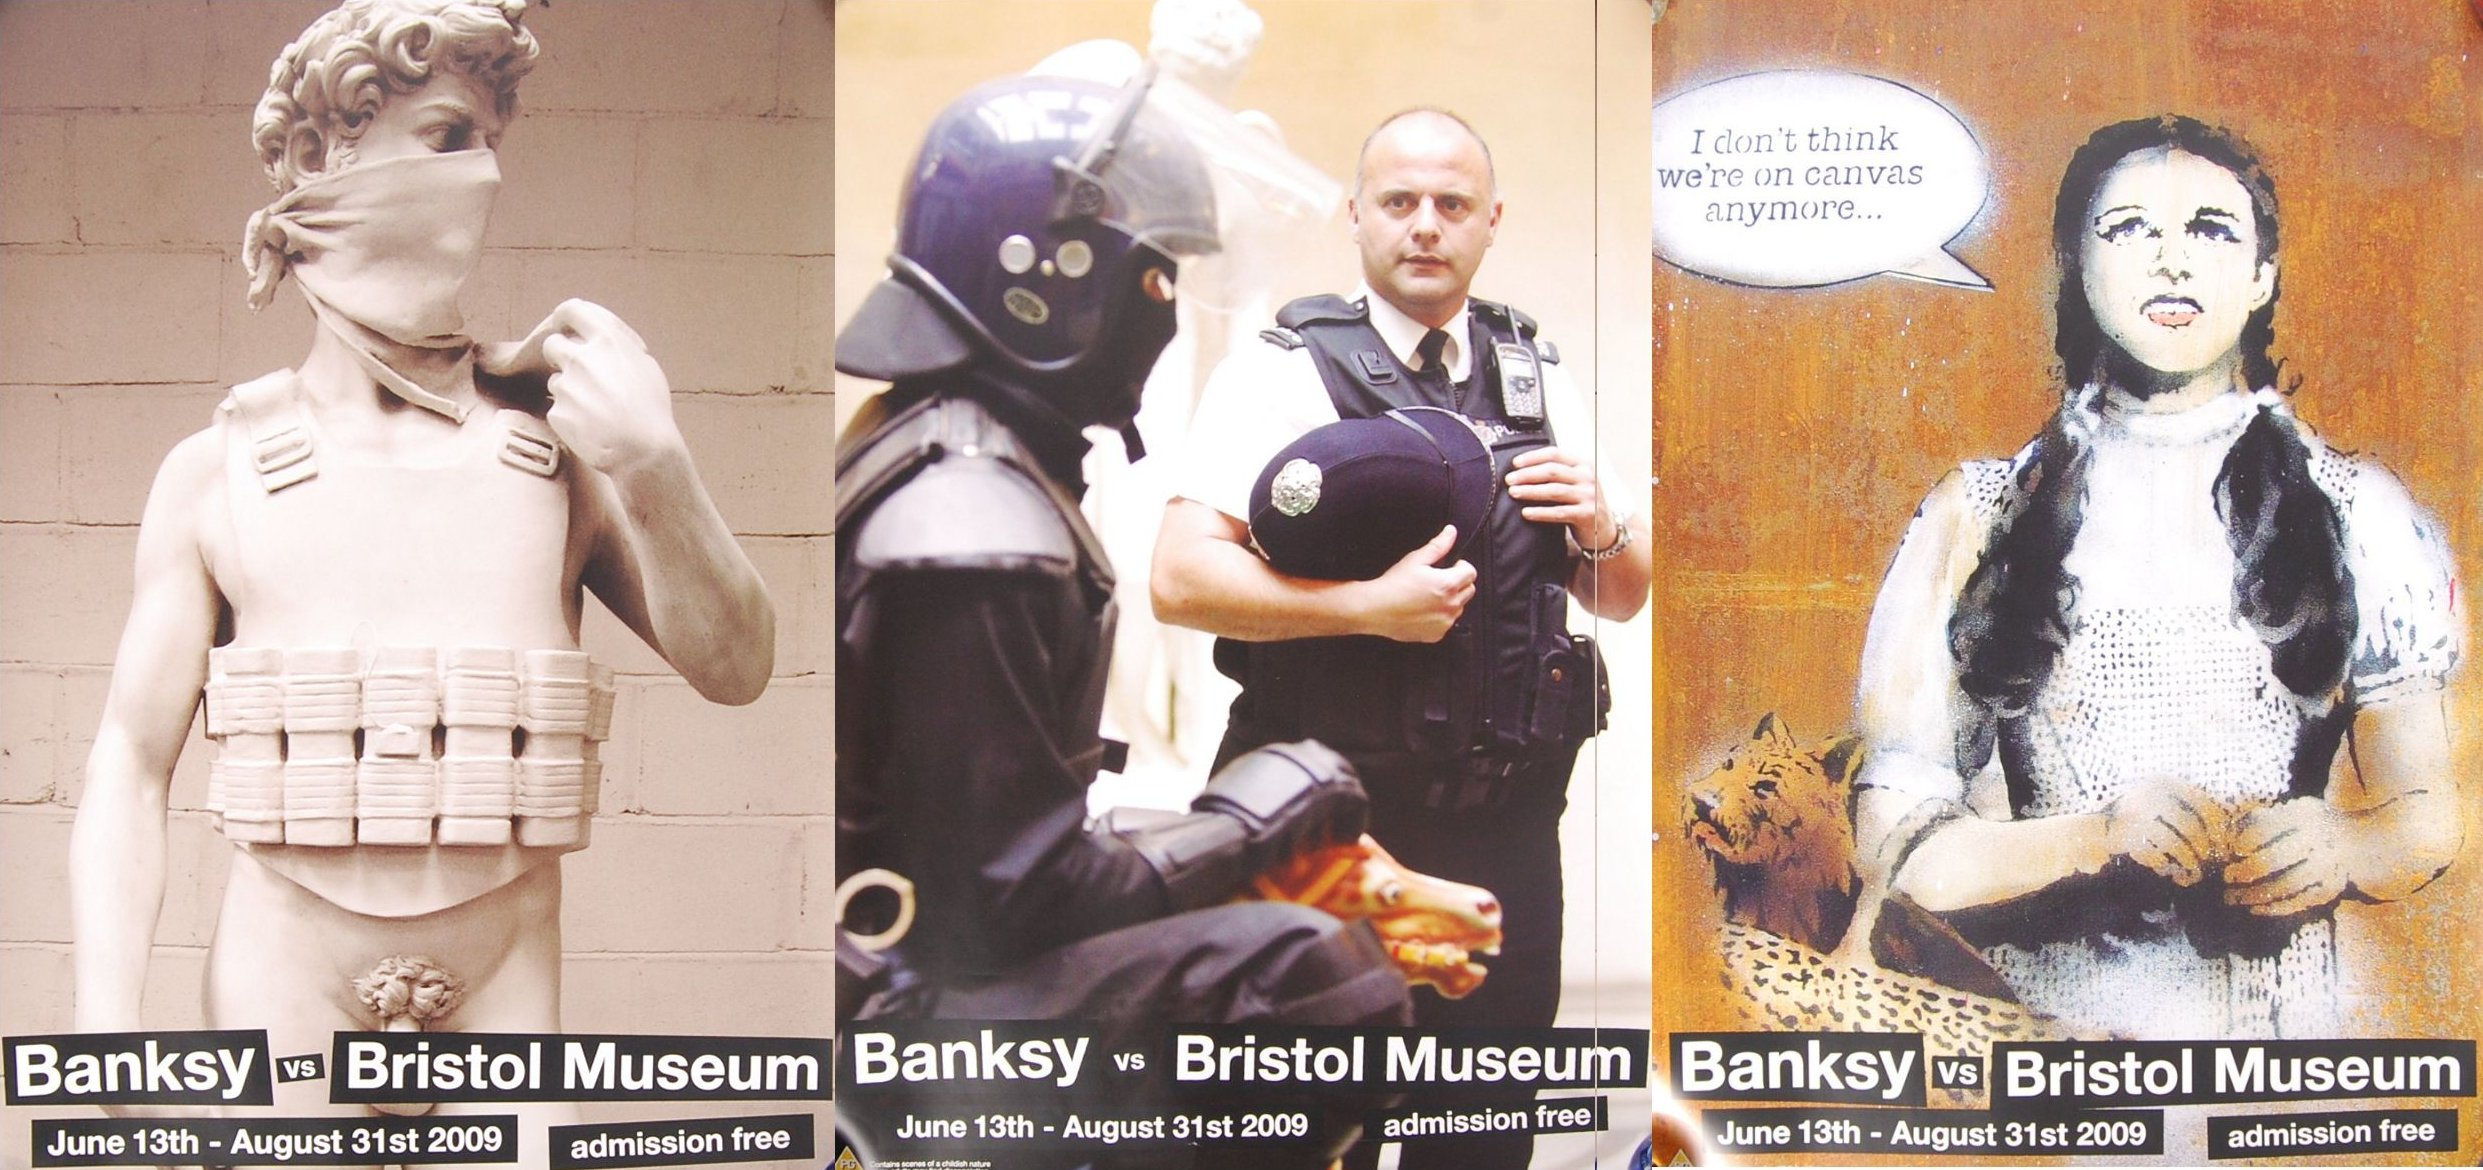 Lot 6 - RARE FULL SET OF ' BANKSY Vs BRISTOL MUSEUM ' EXHIBITION POSTERS